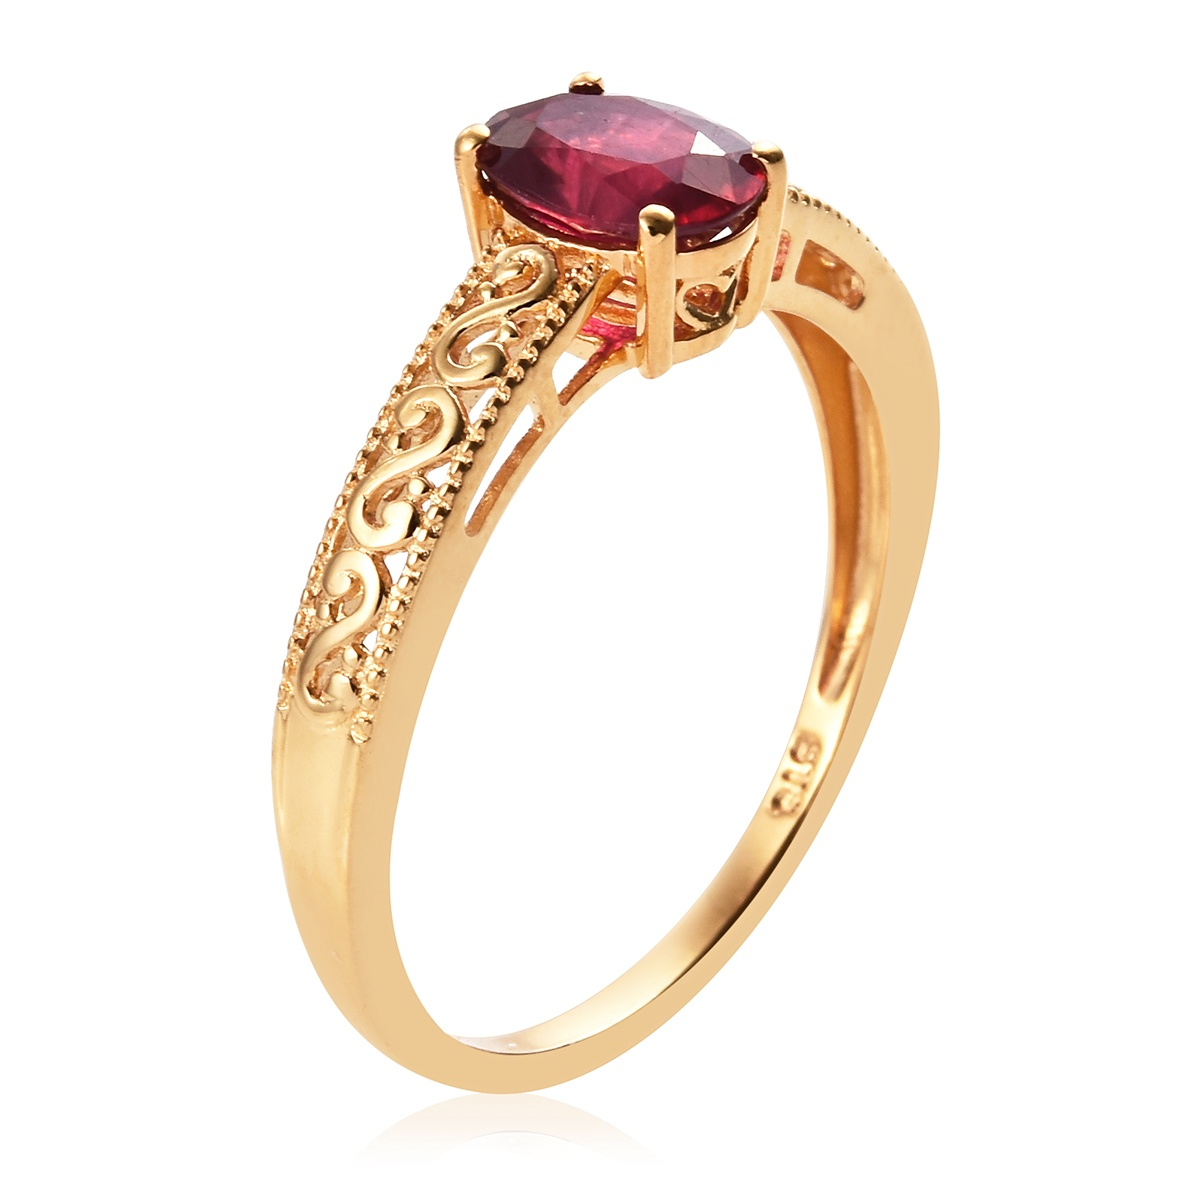 Niassa Ruby Ring in Vermeil YG Over Sterling Silver (Size 7.0) 1.80 ctw